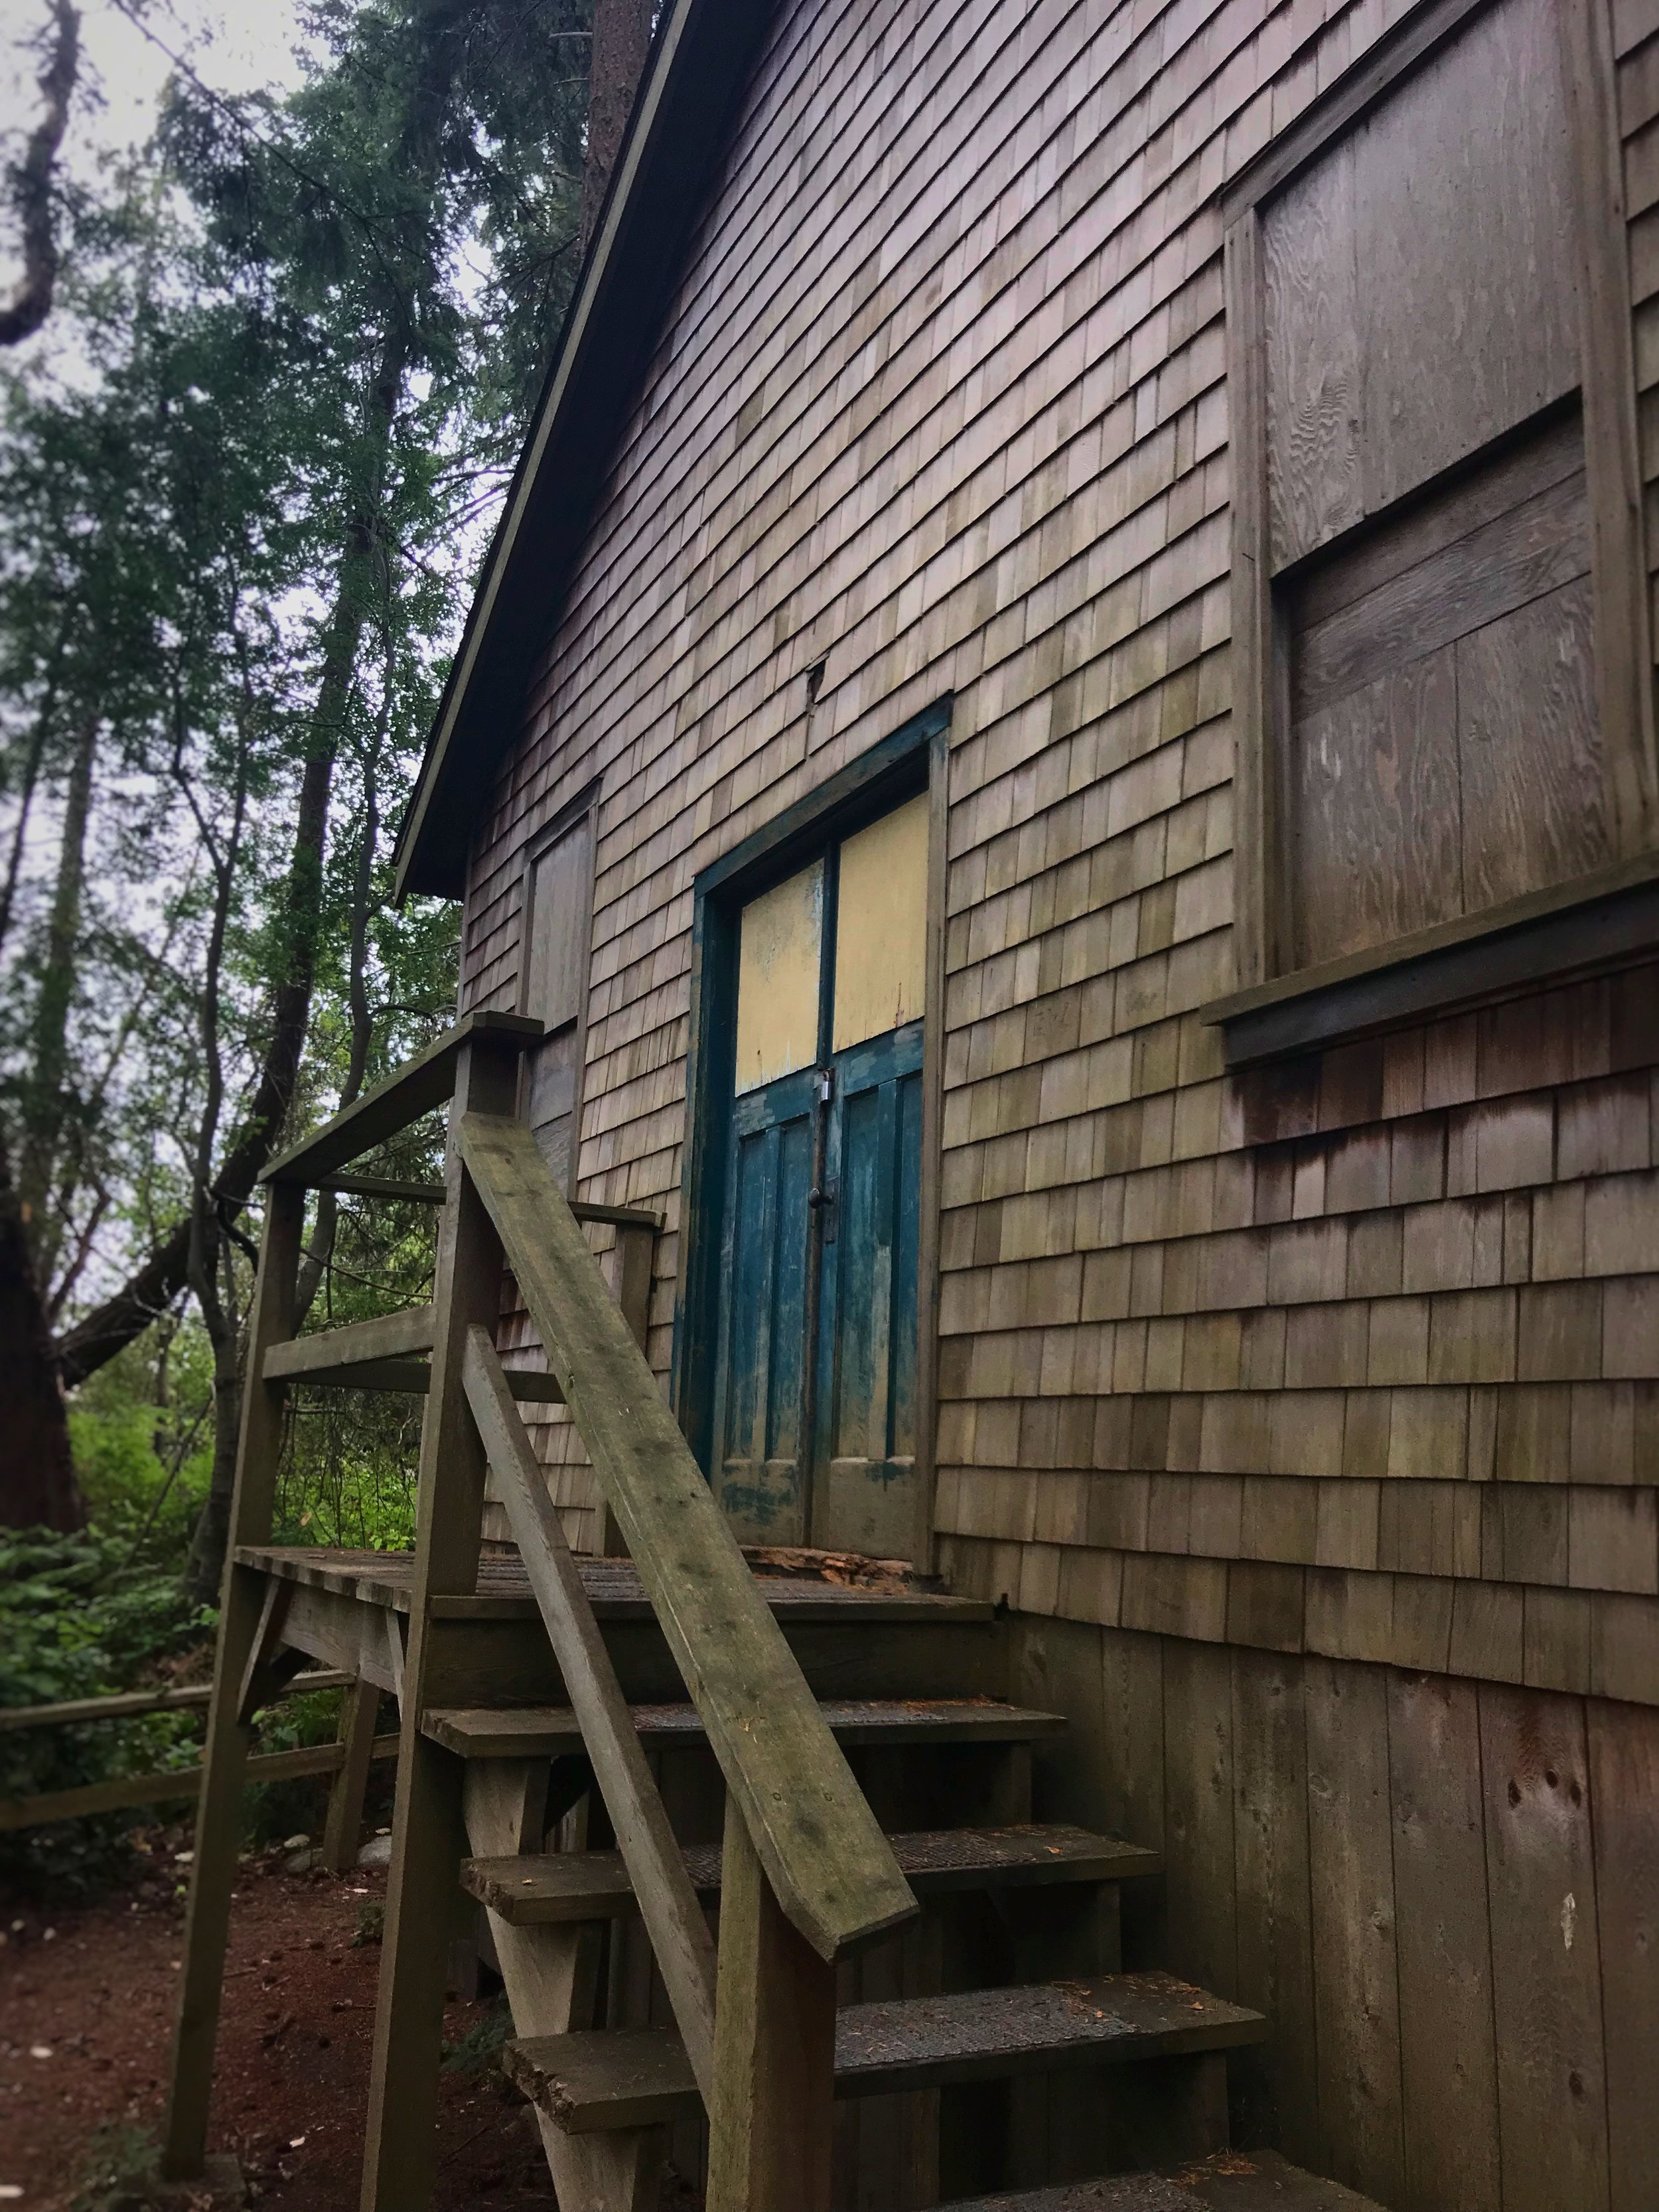 There is a bunch of cool old cedar shake buildings in Lighthouse Park.